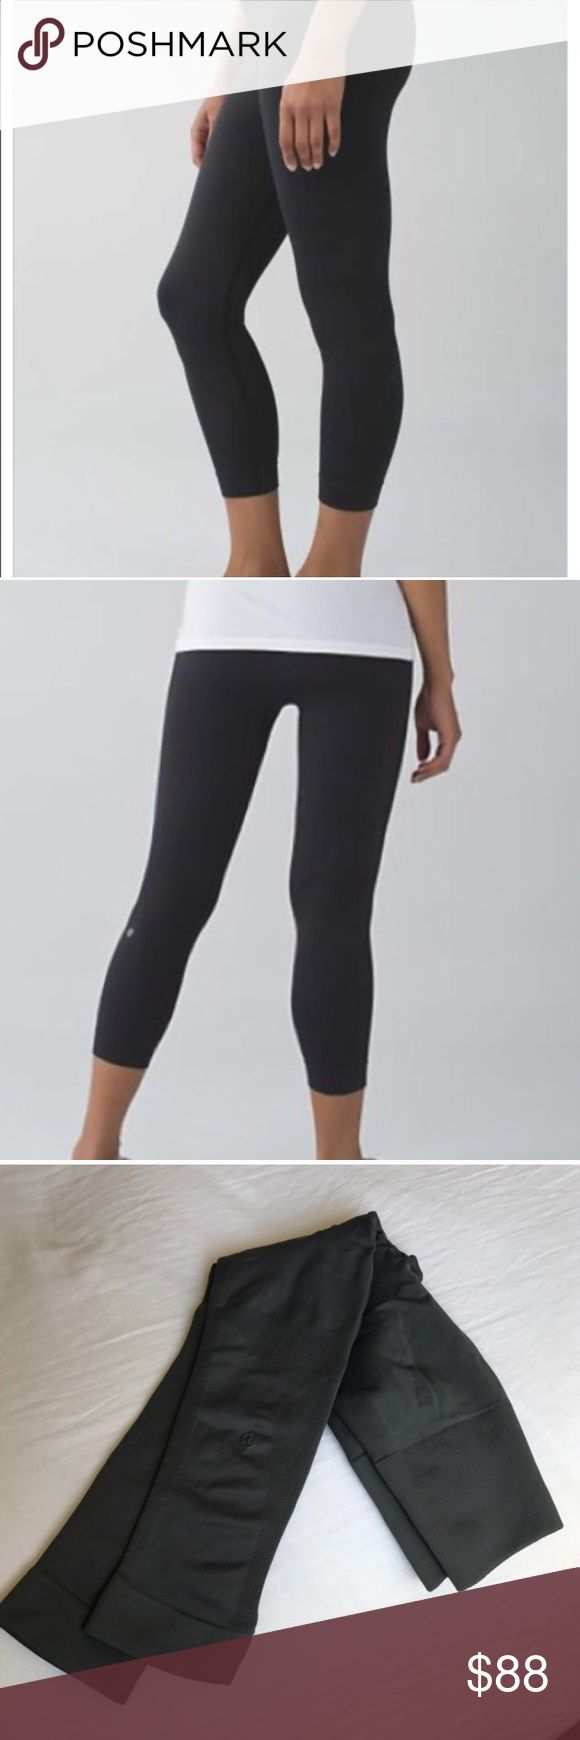 Lululemon Zone In Crop Lulu Crop, Zone In design. Black. 21 inch crops. High rise. Engineered with zoned compression to give you a hugged feeling and feel supported in all the right places. These are perfect condition, and snug to make you feel firm and held in, such a flattering fit. Bundle for discount. lululemon athletica Pants Leggings